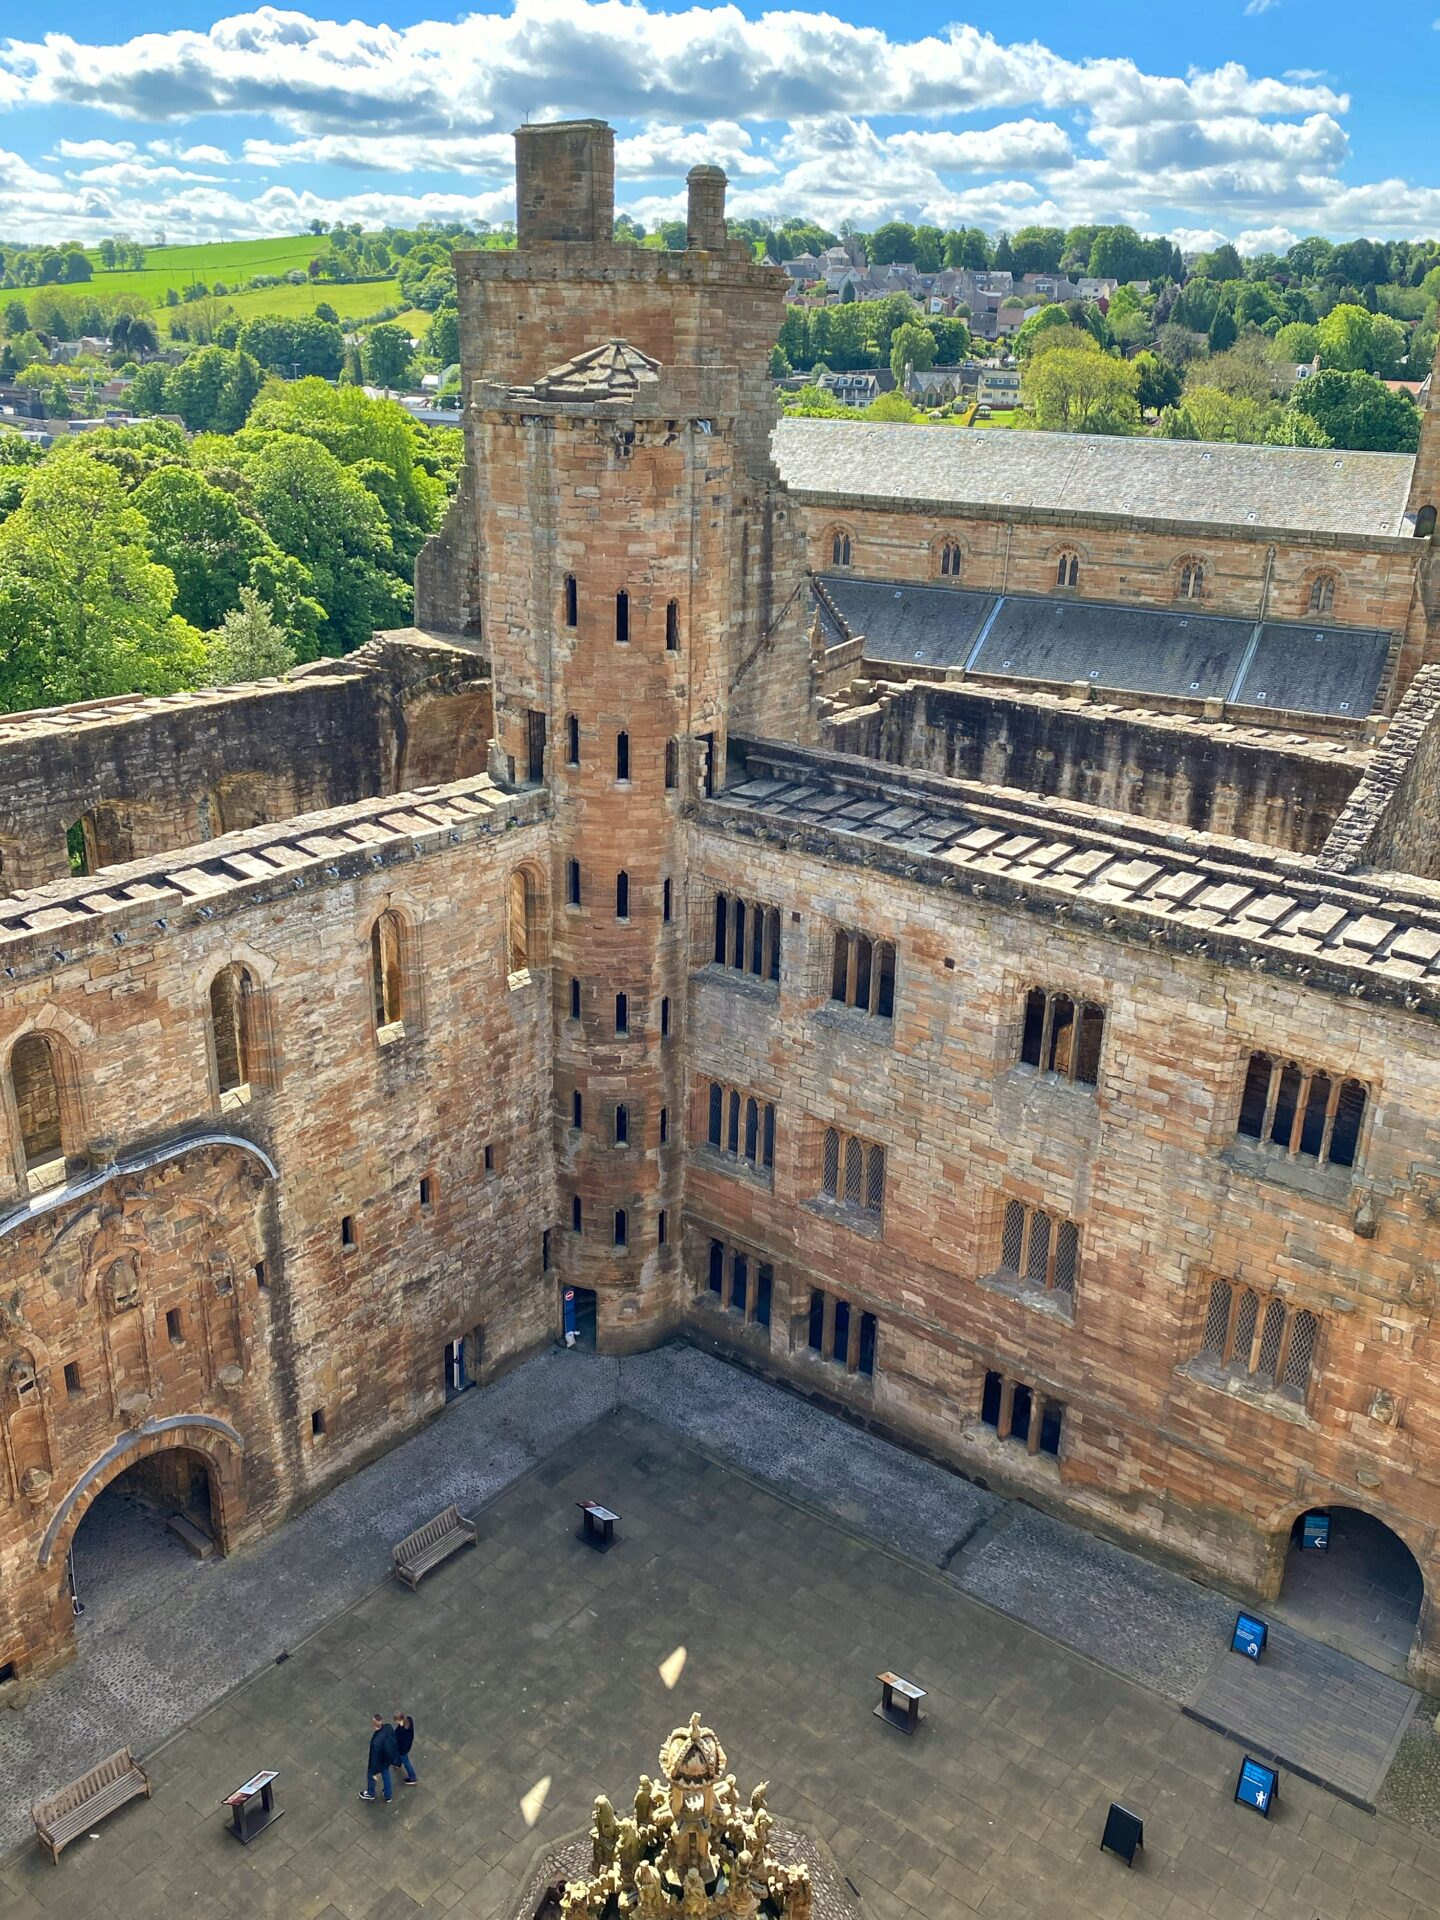 Looking down at Linlithgow Palace from the Queen's bower